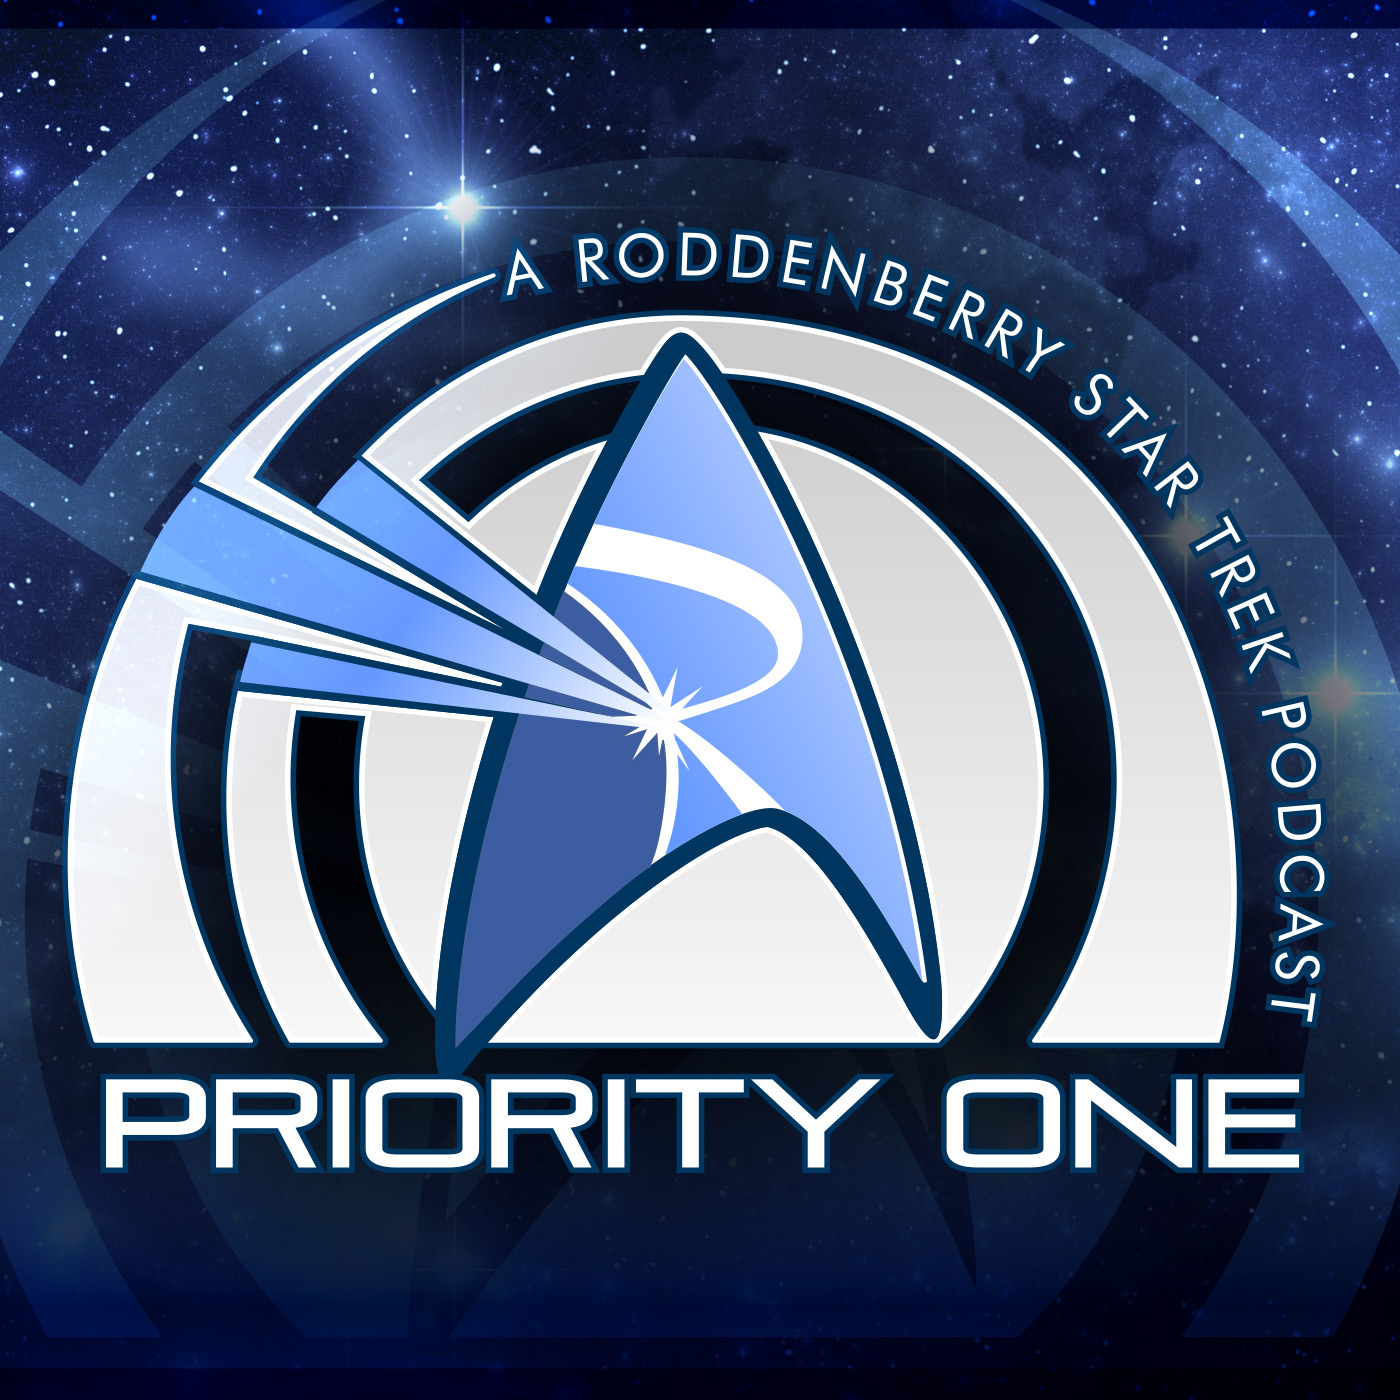 Artwork for The Last One (of 2018) | Priority One: A Roddenberry Star Trek Podcast